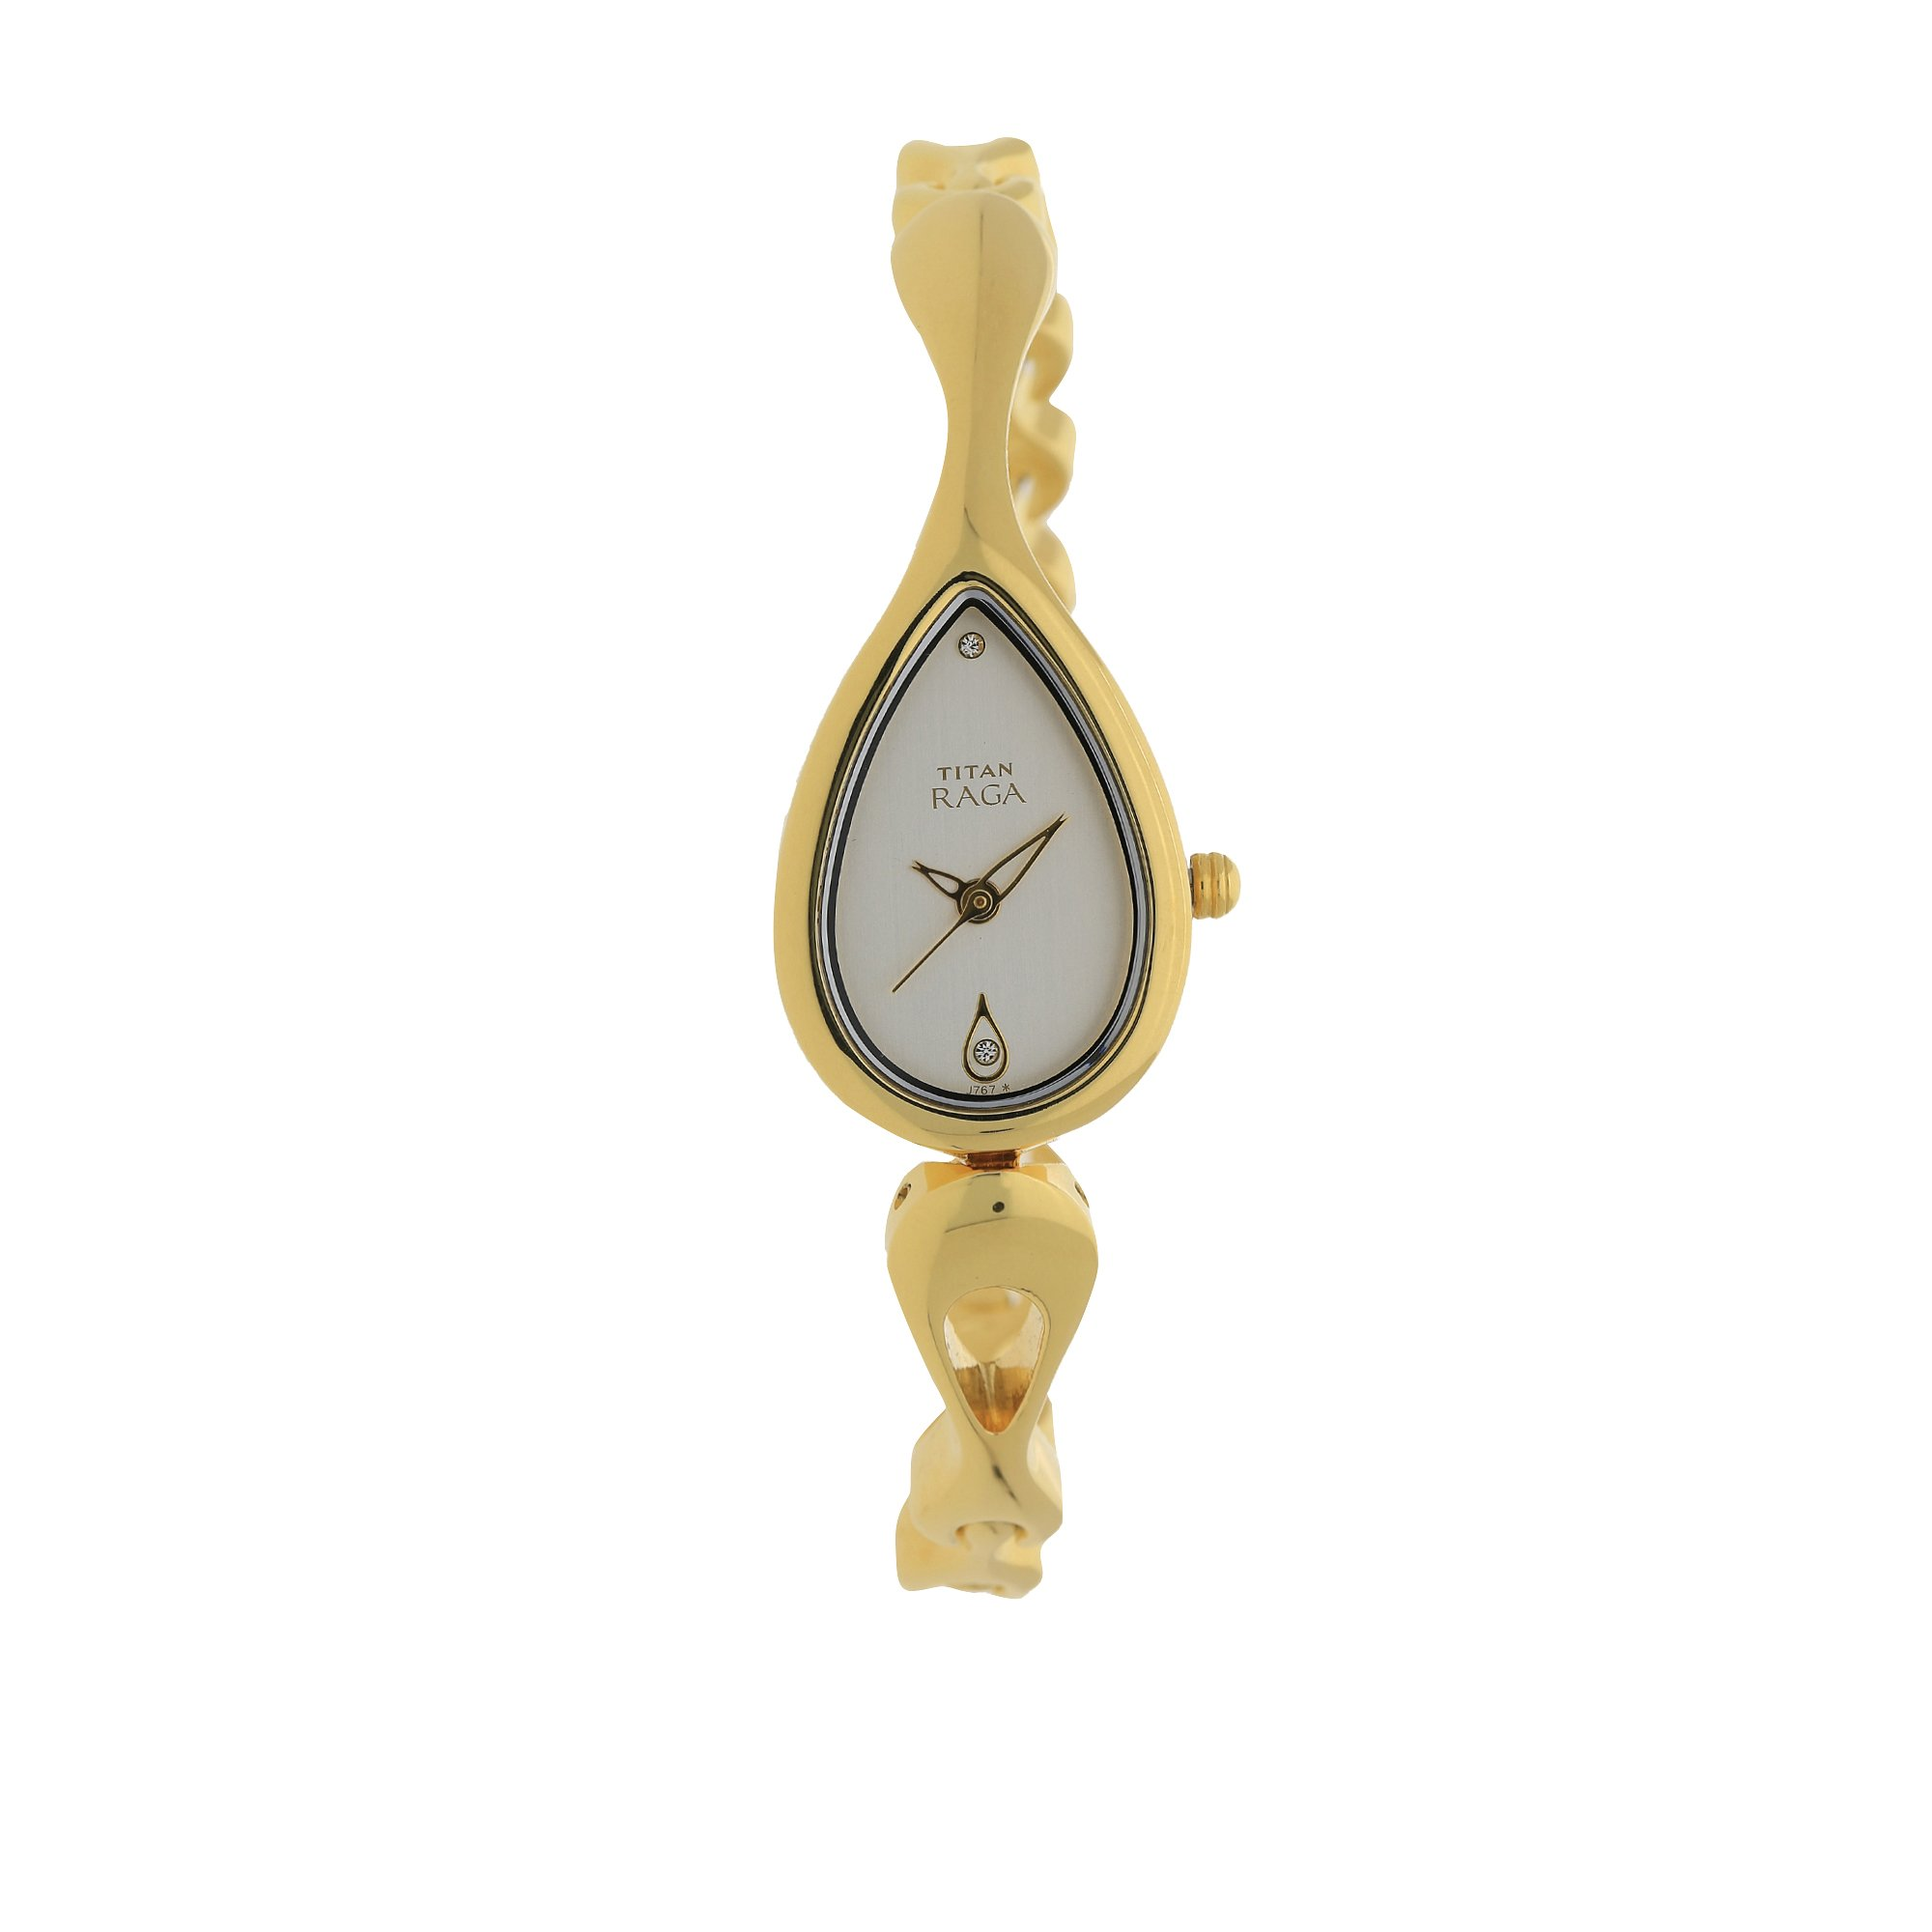 Titan Raga Gold Metal Jewellery Bangle Design, Bracelet Clasp, Quartz Glass, Water Resistant Analog Wrist Watch by Titan